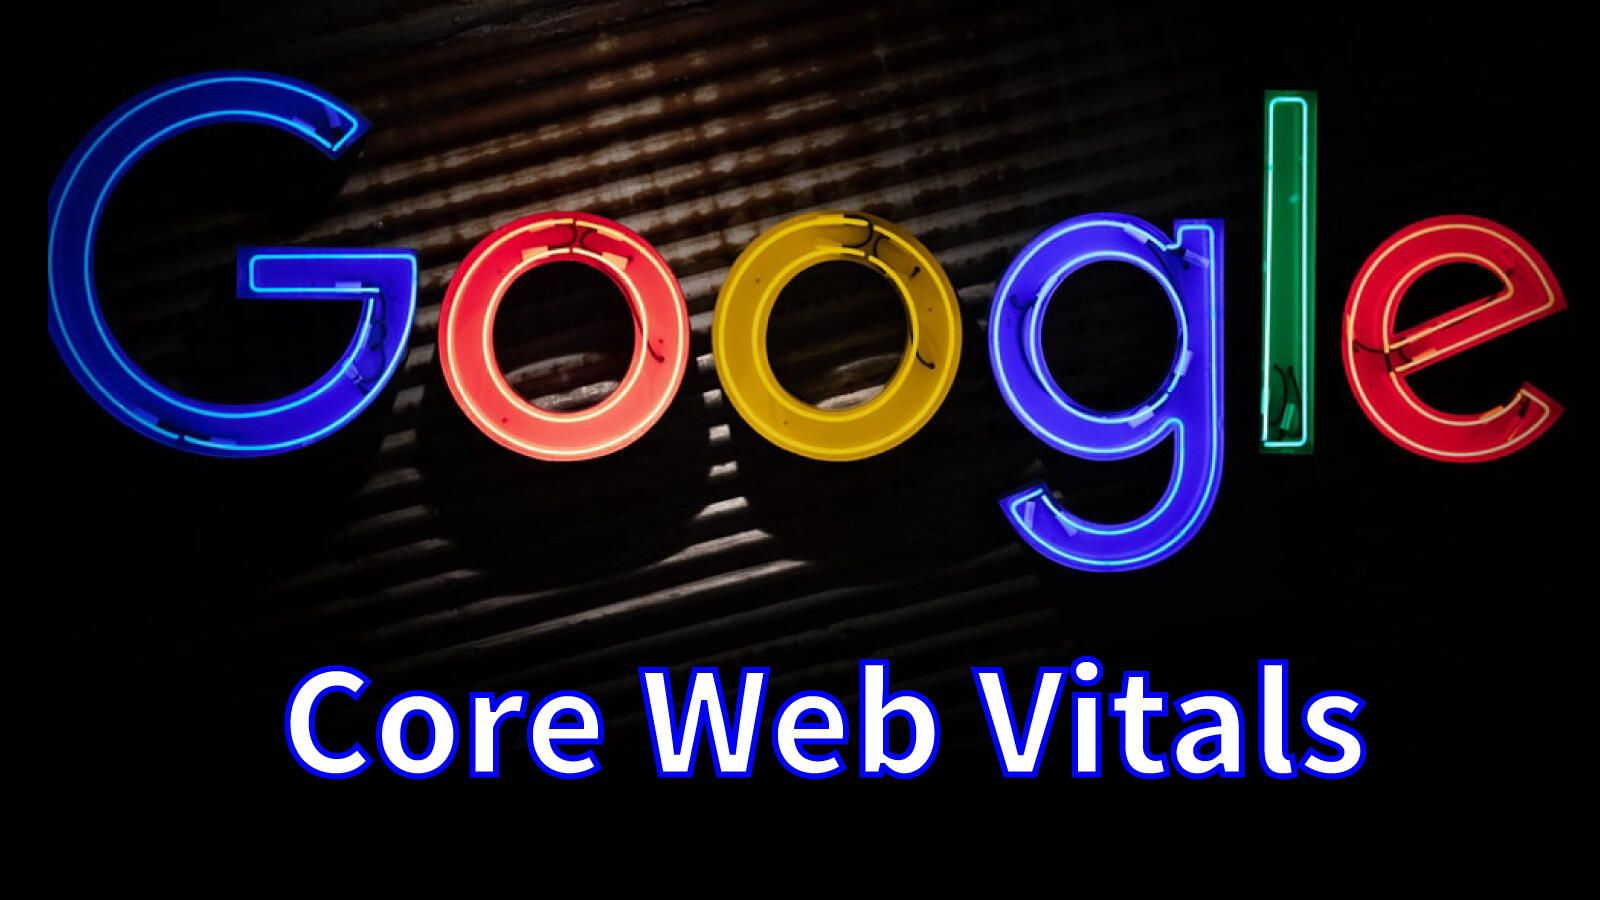 /core-web-vitals-are-an-official-google-ranking-factor-now-what-we-need-to-know-qwp332m feature image